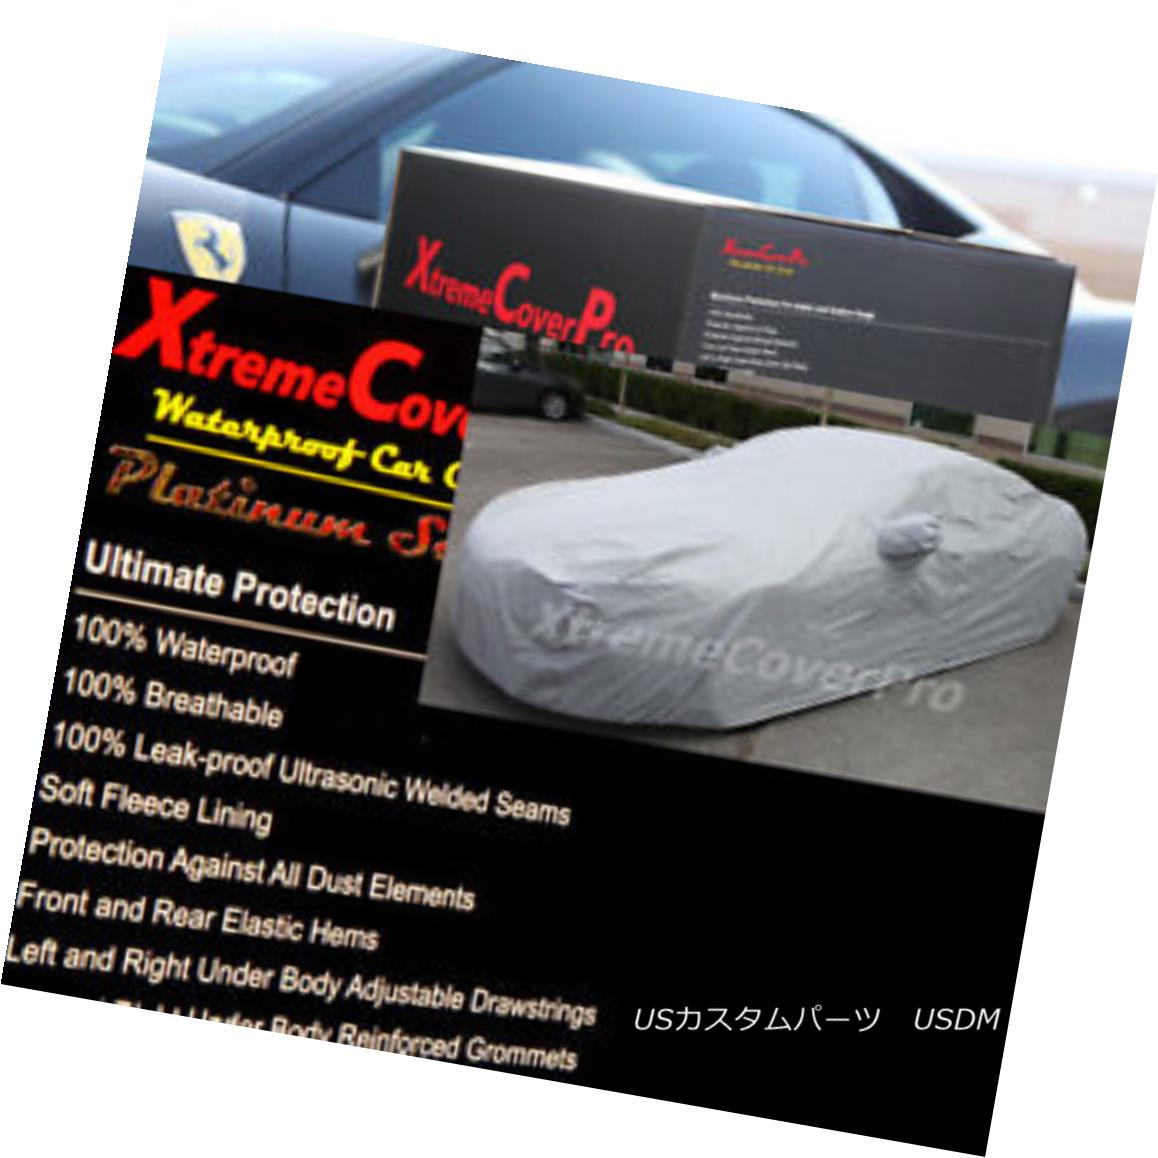 カーカバー 2015 ACURA RLX Waterproof Car Cover w/Mirror Pockets - Gray 2015 ACURA RLX防水カーカバー付き/ミラーポケット - グレー